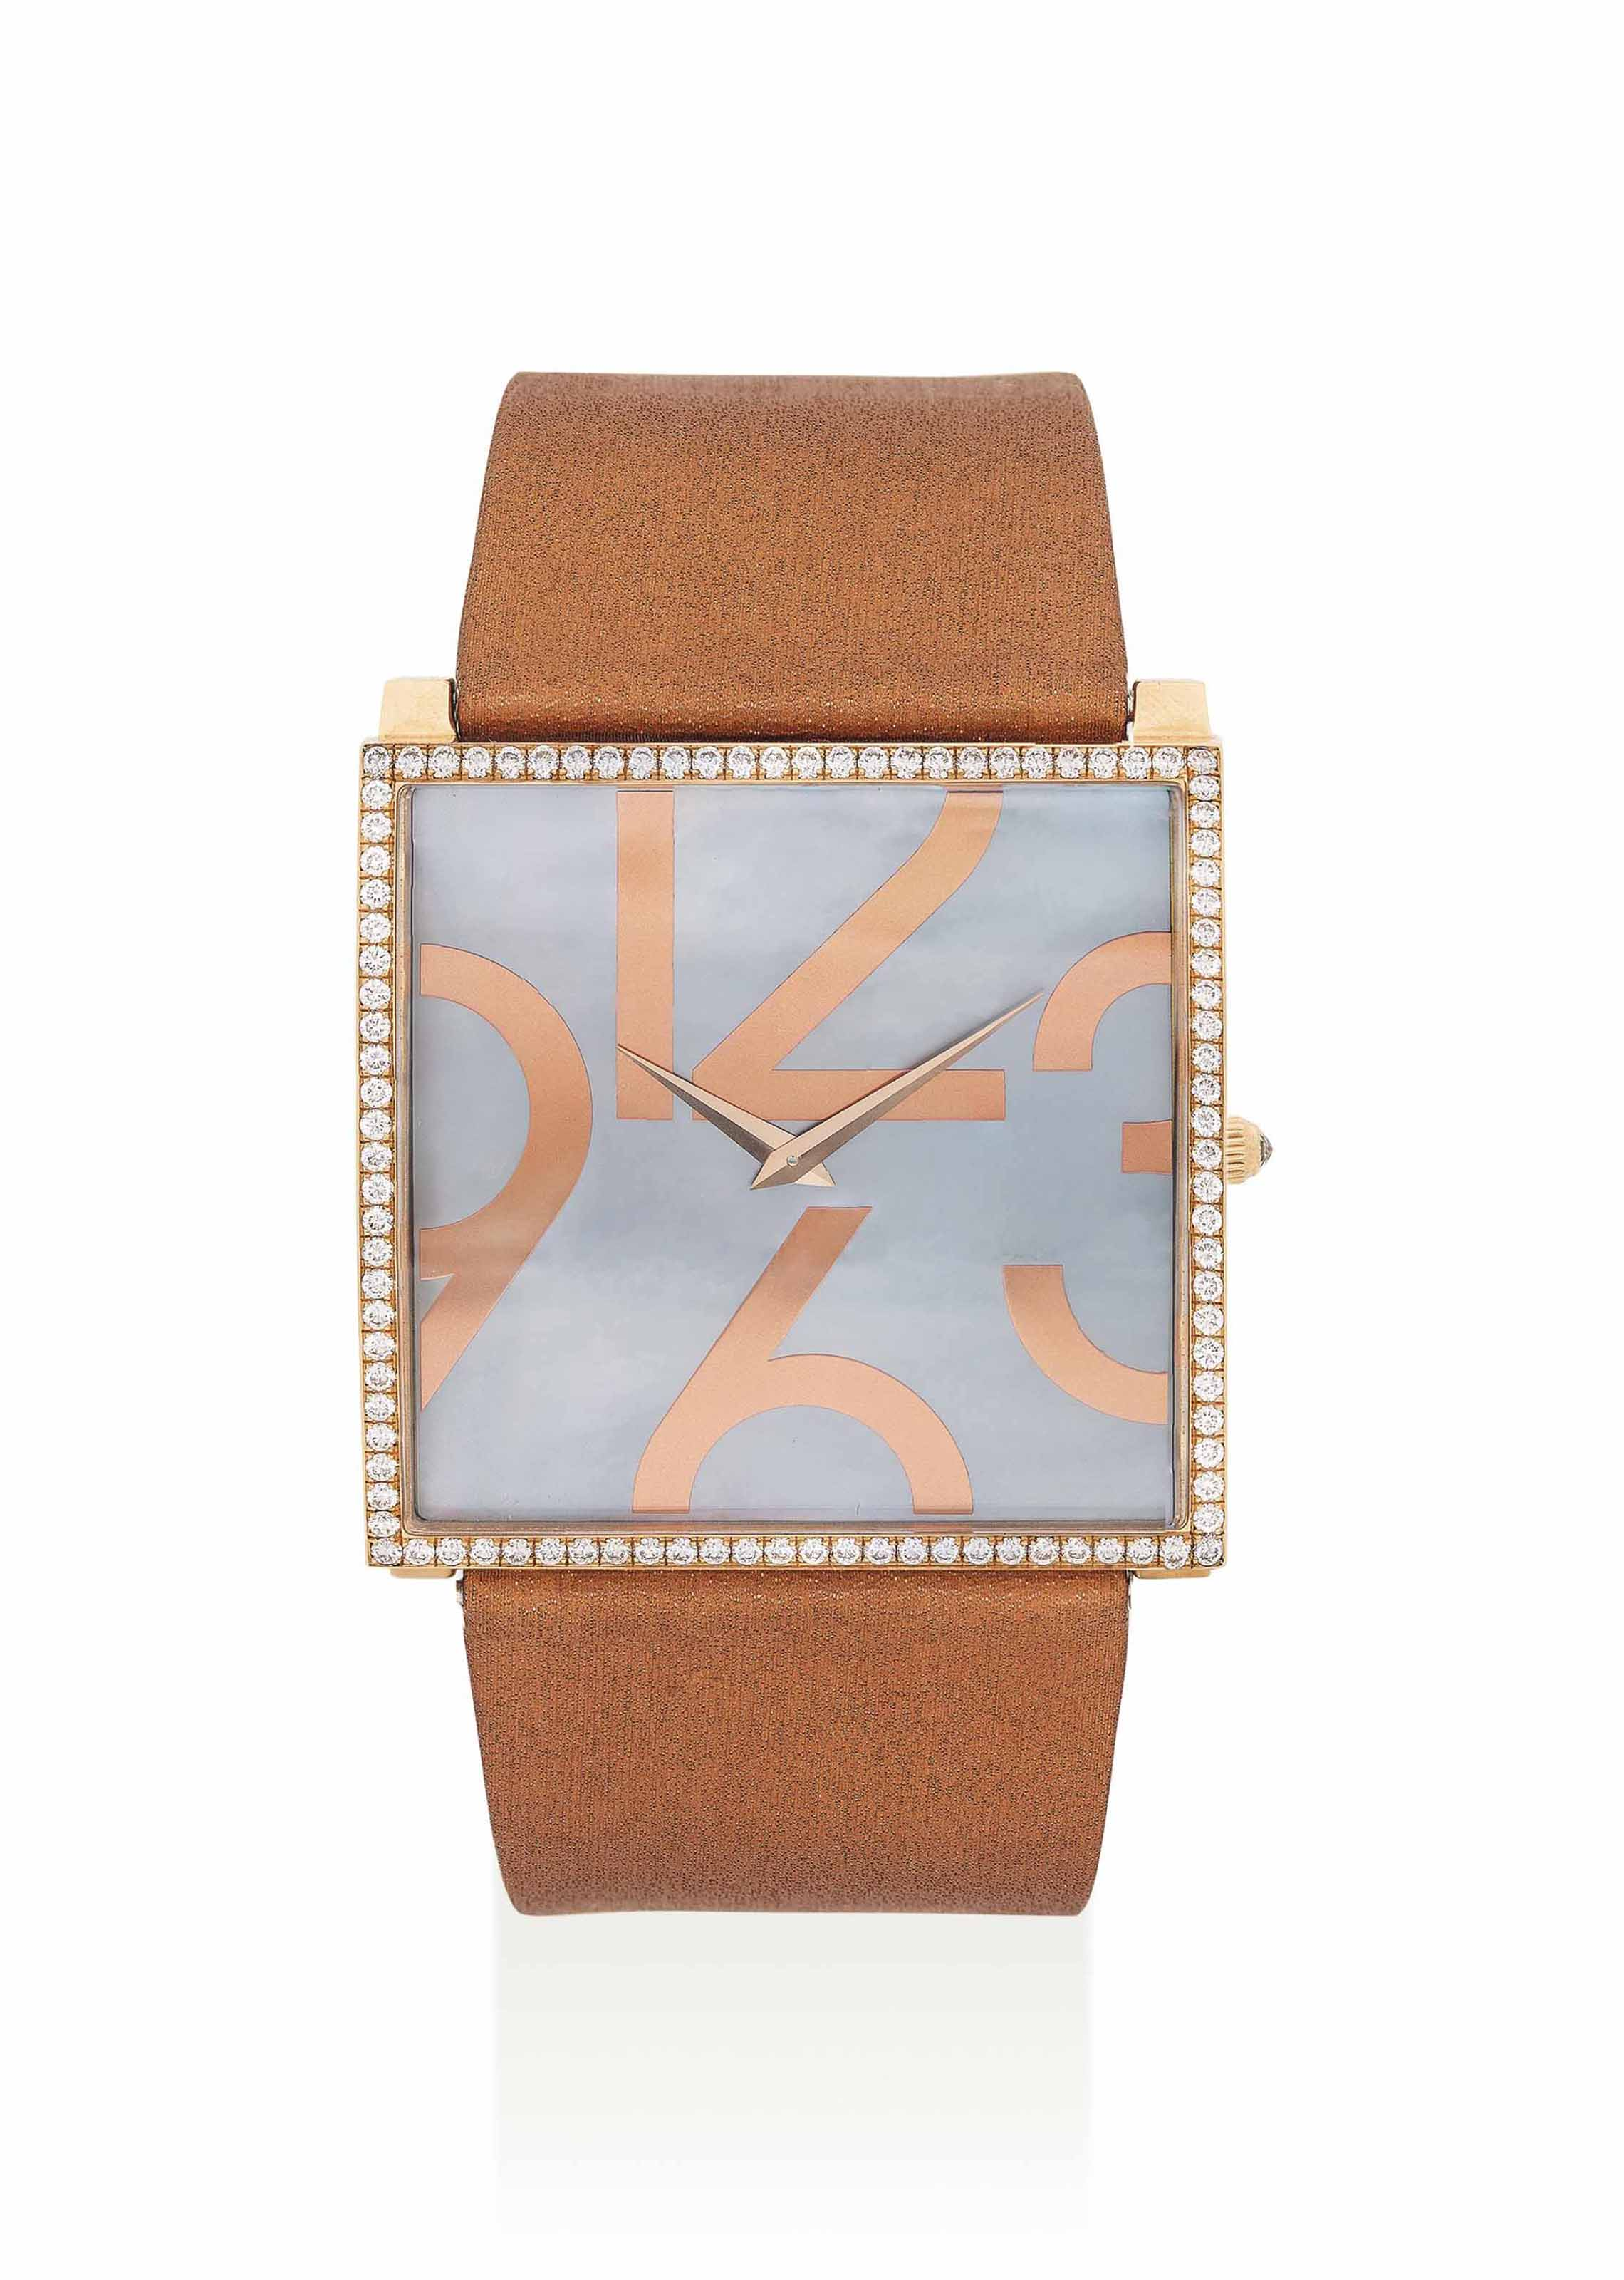 GUY ELLIA. AN 18K PINK GOLD AND DIAMOND-SET SQUARE WRISTWATCH WITH MOTHER-OF-PEARL DIAL